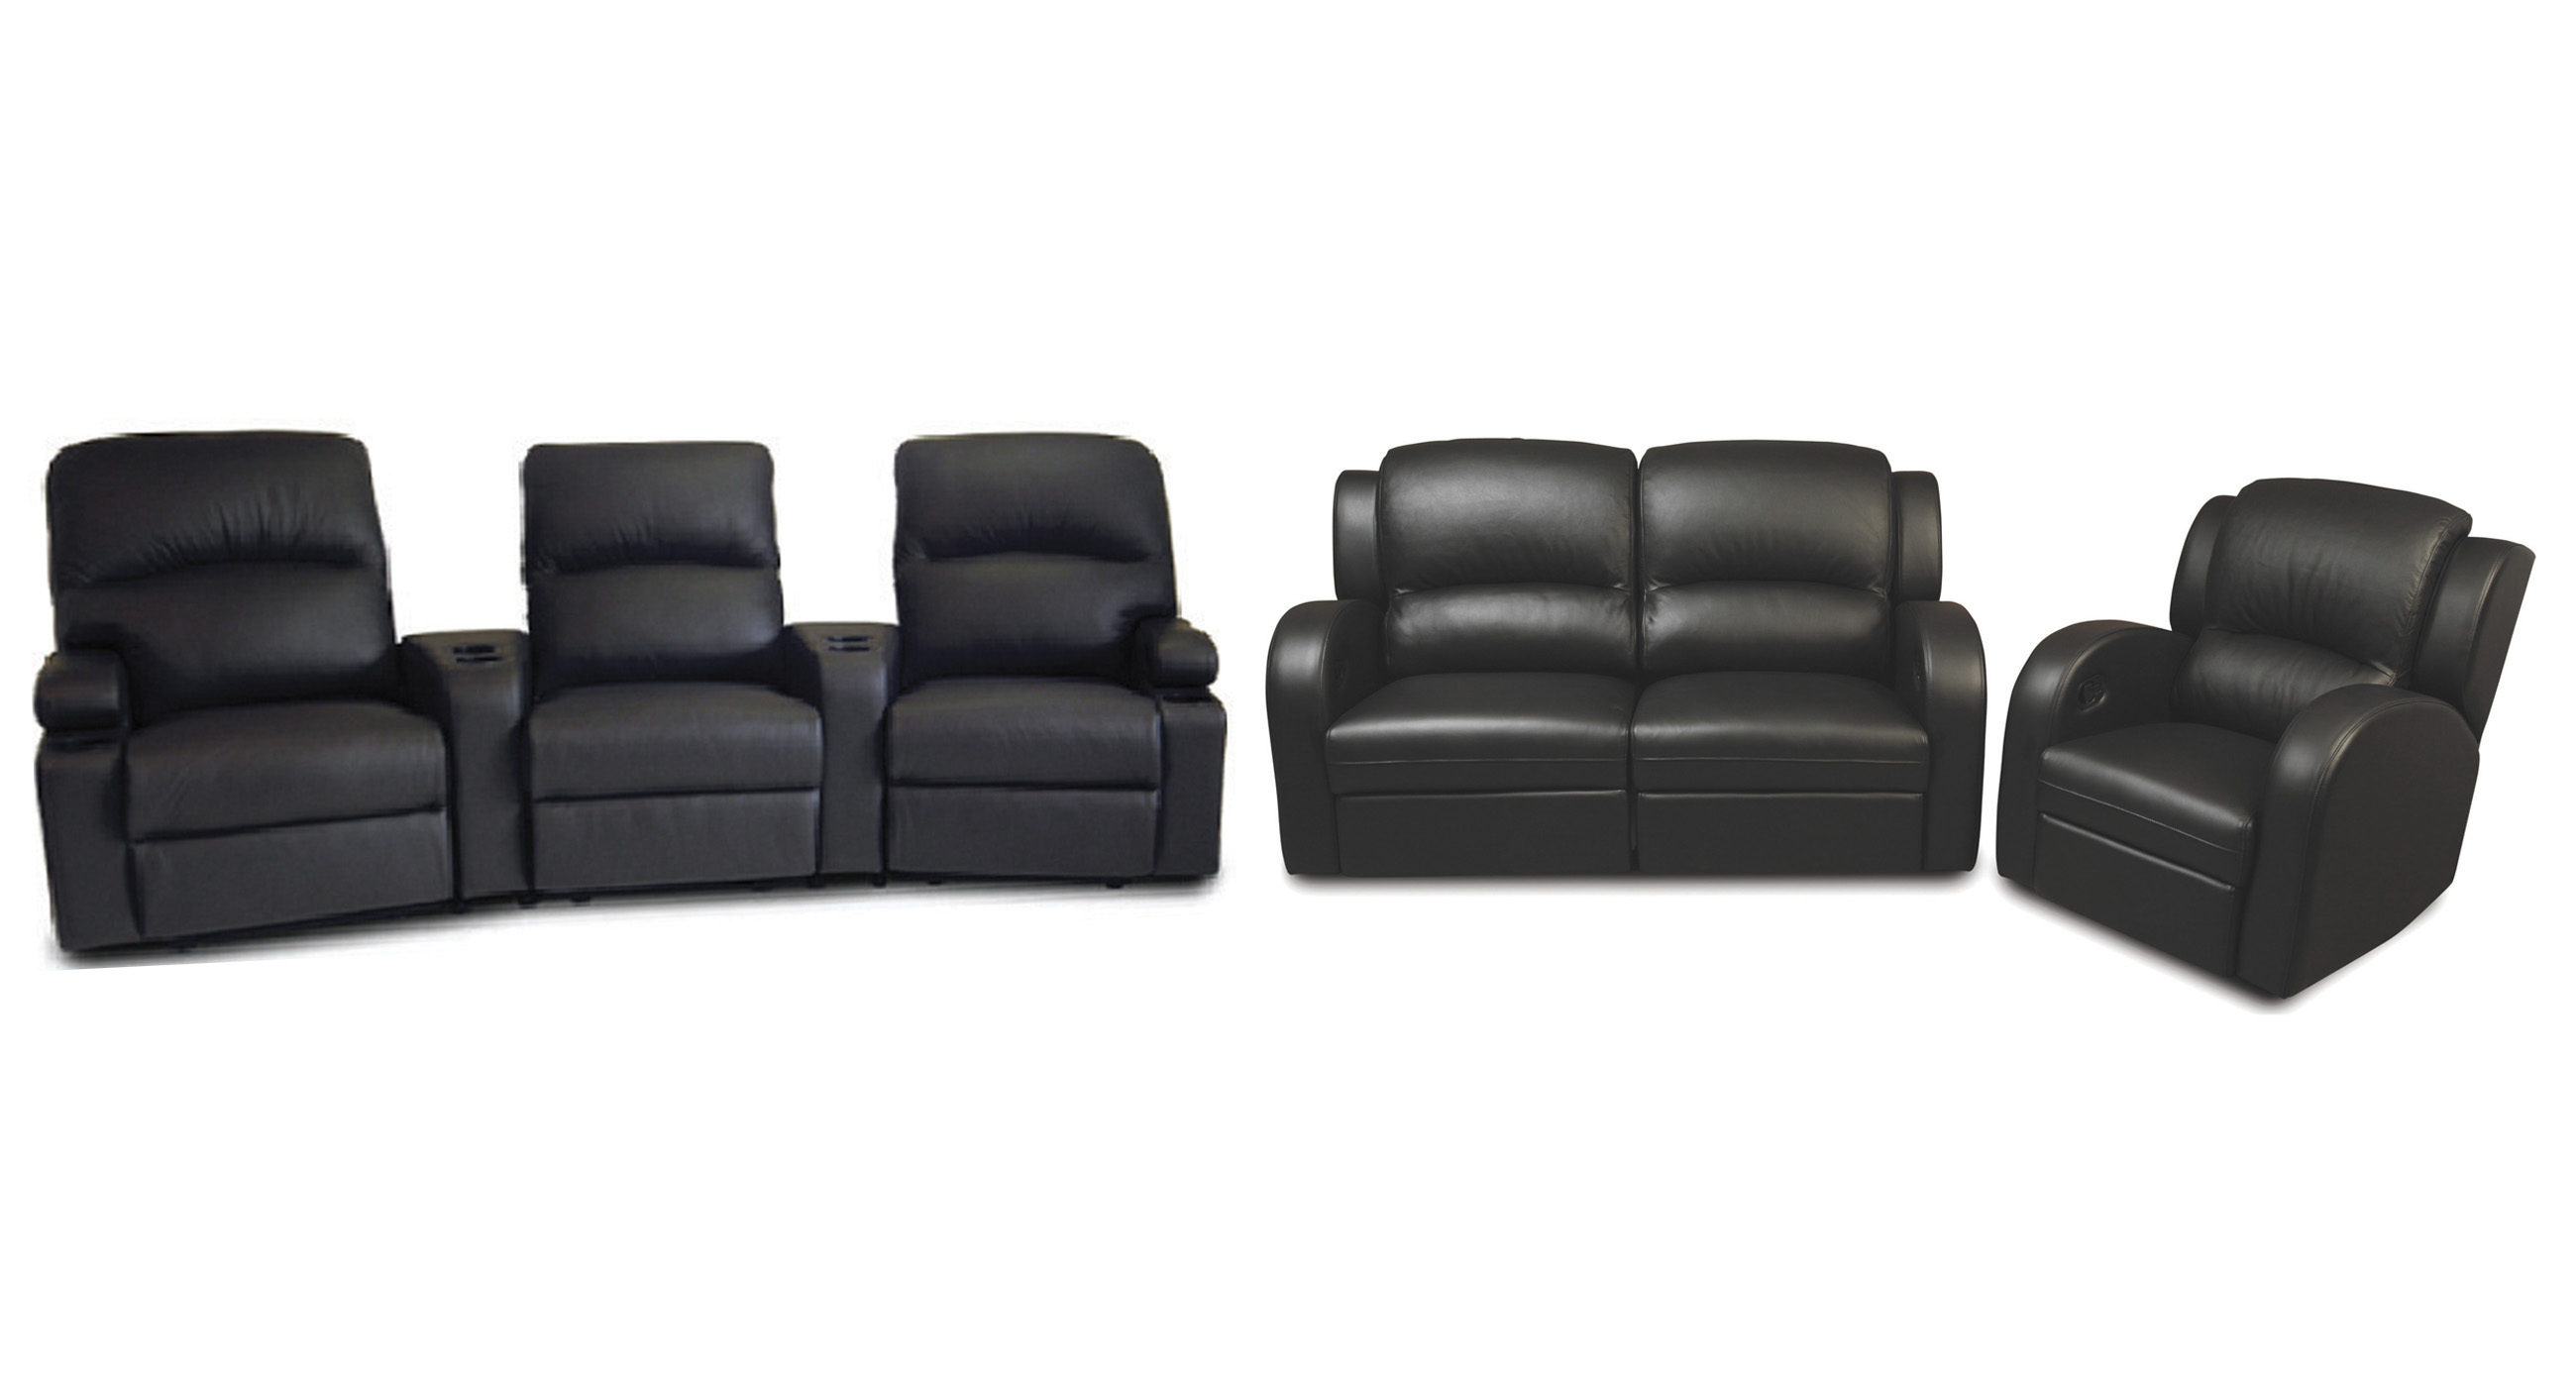 Deco, Retreat and Matrix Recliner Combinations